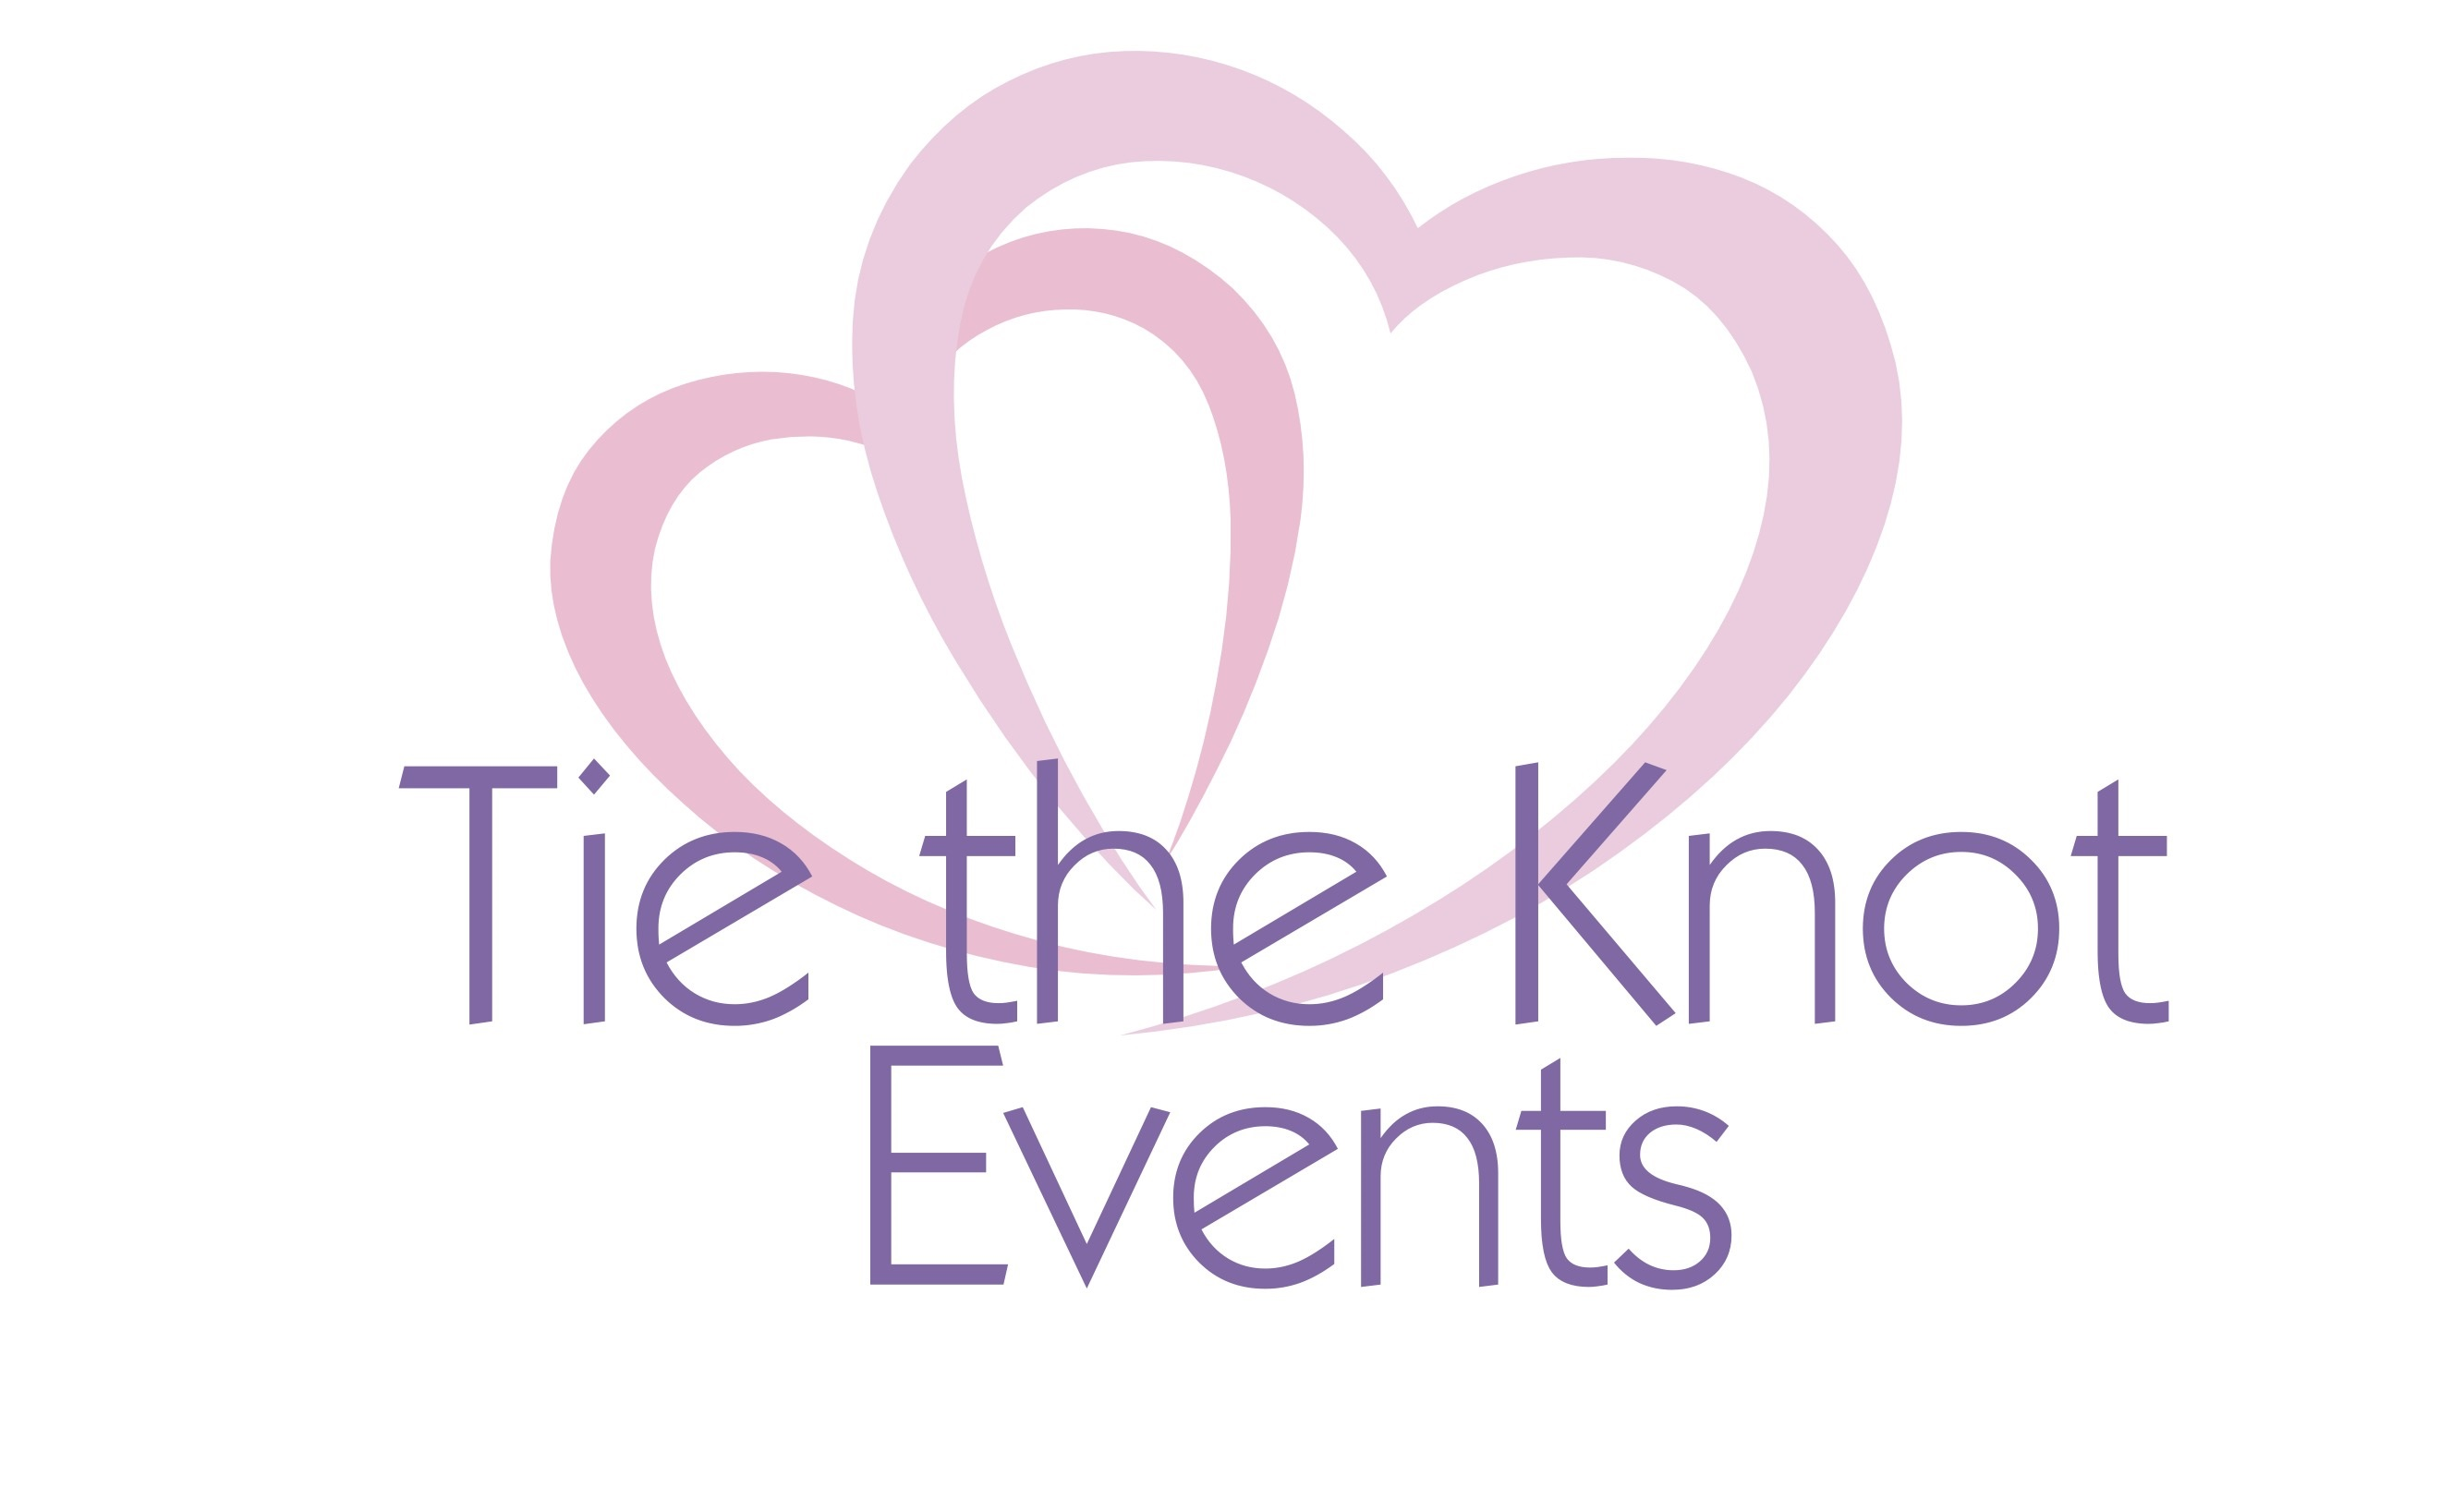 Tie the knot events